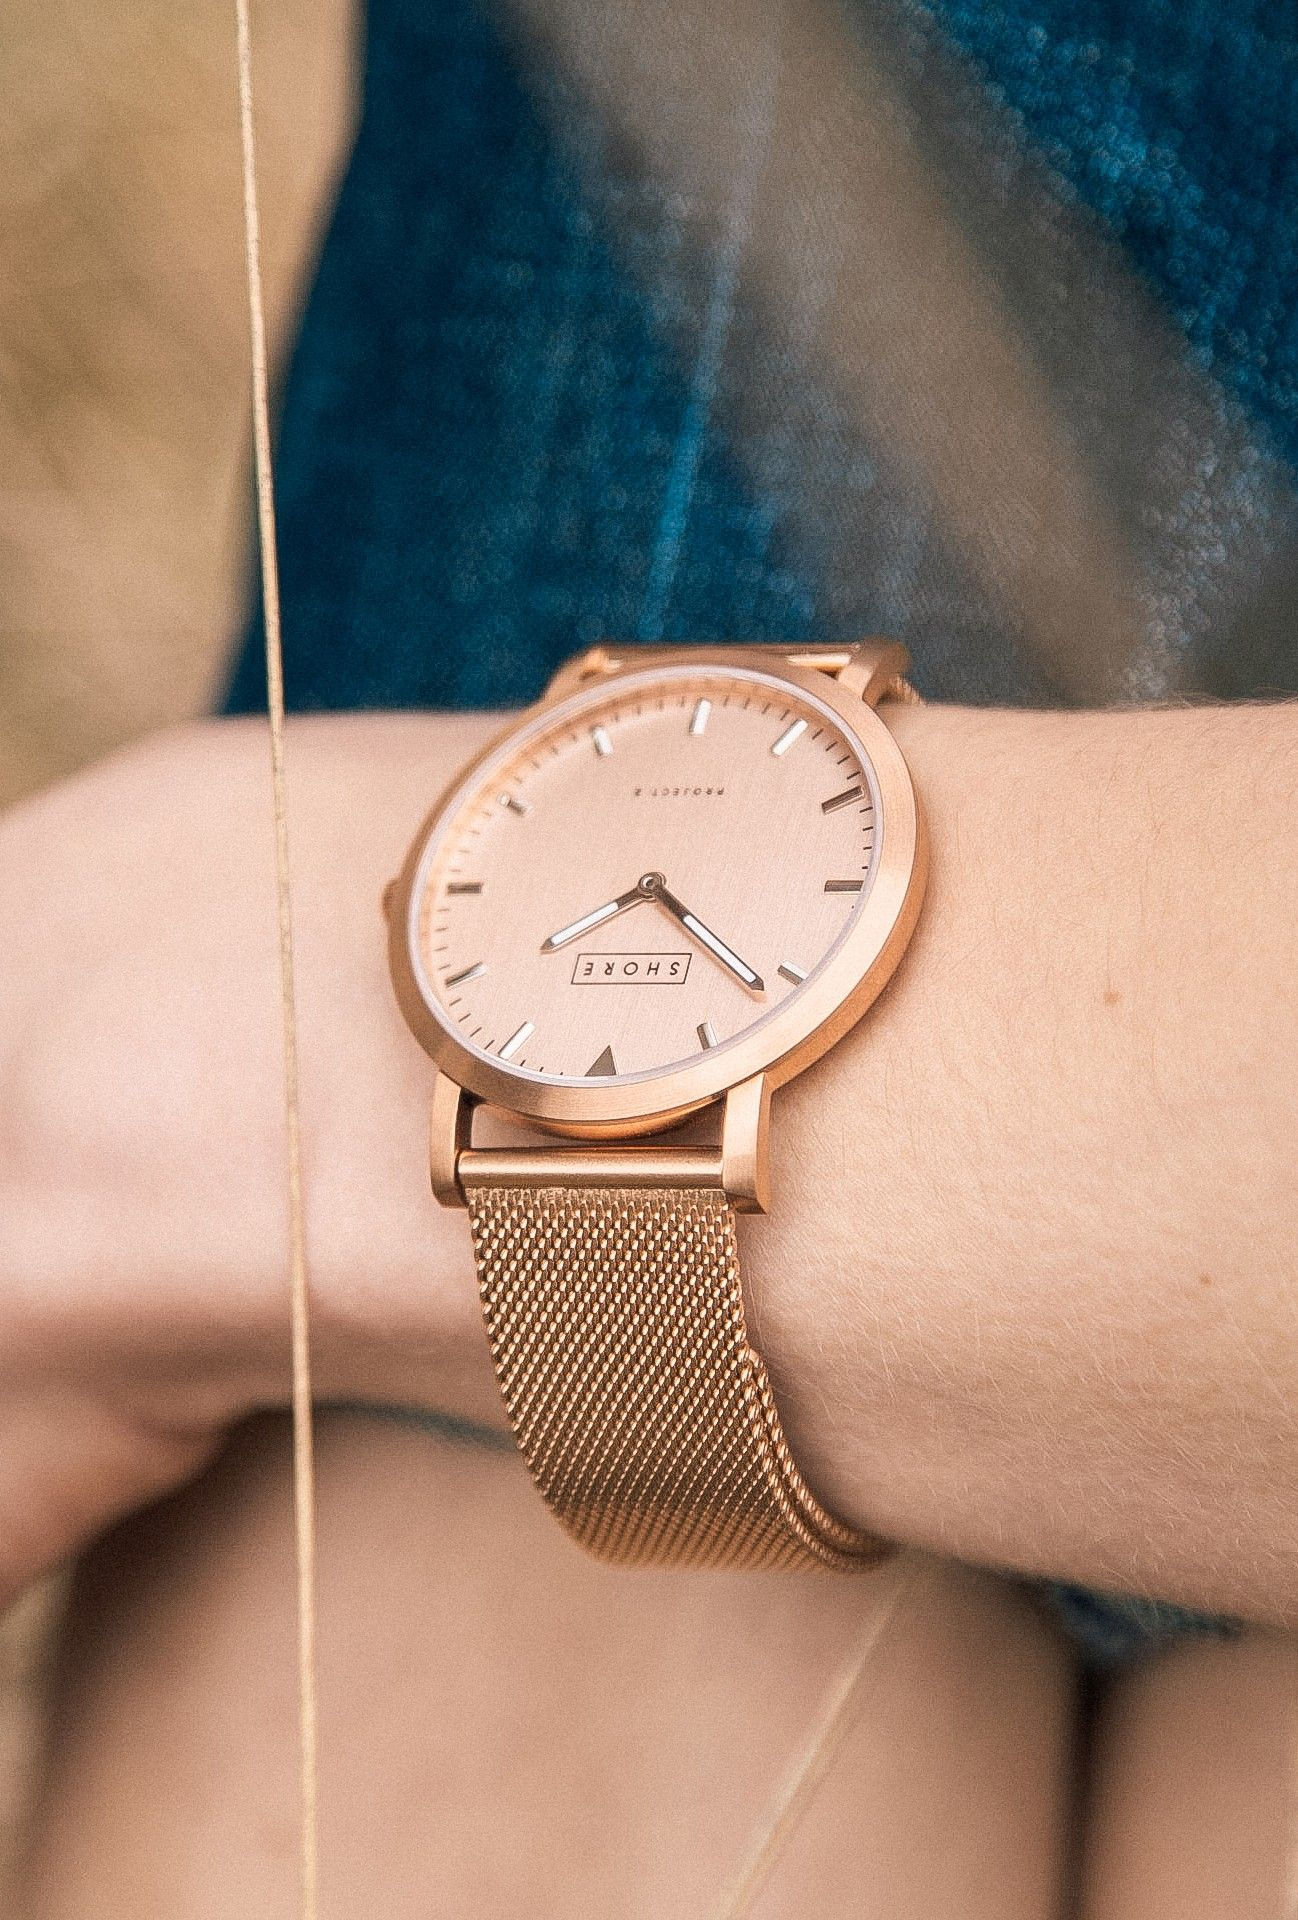 978ca2bcd3f Rose gold looks beautiful in summer